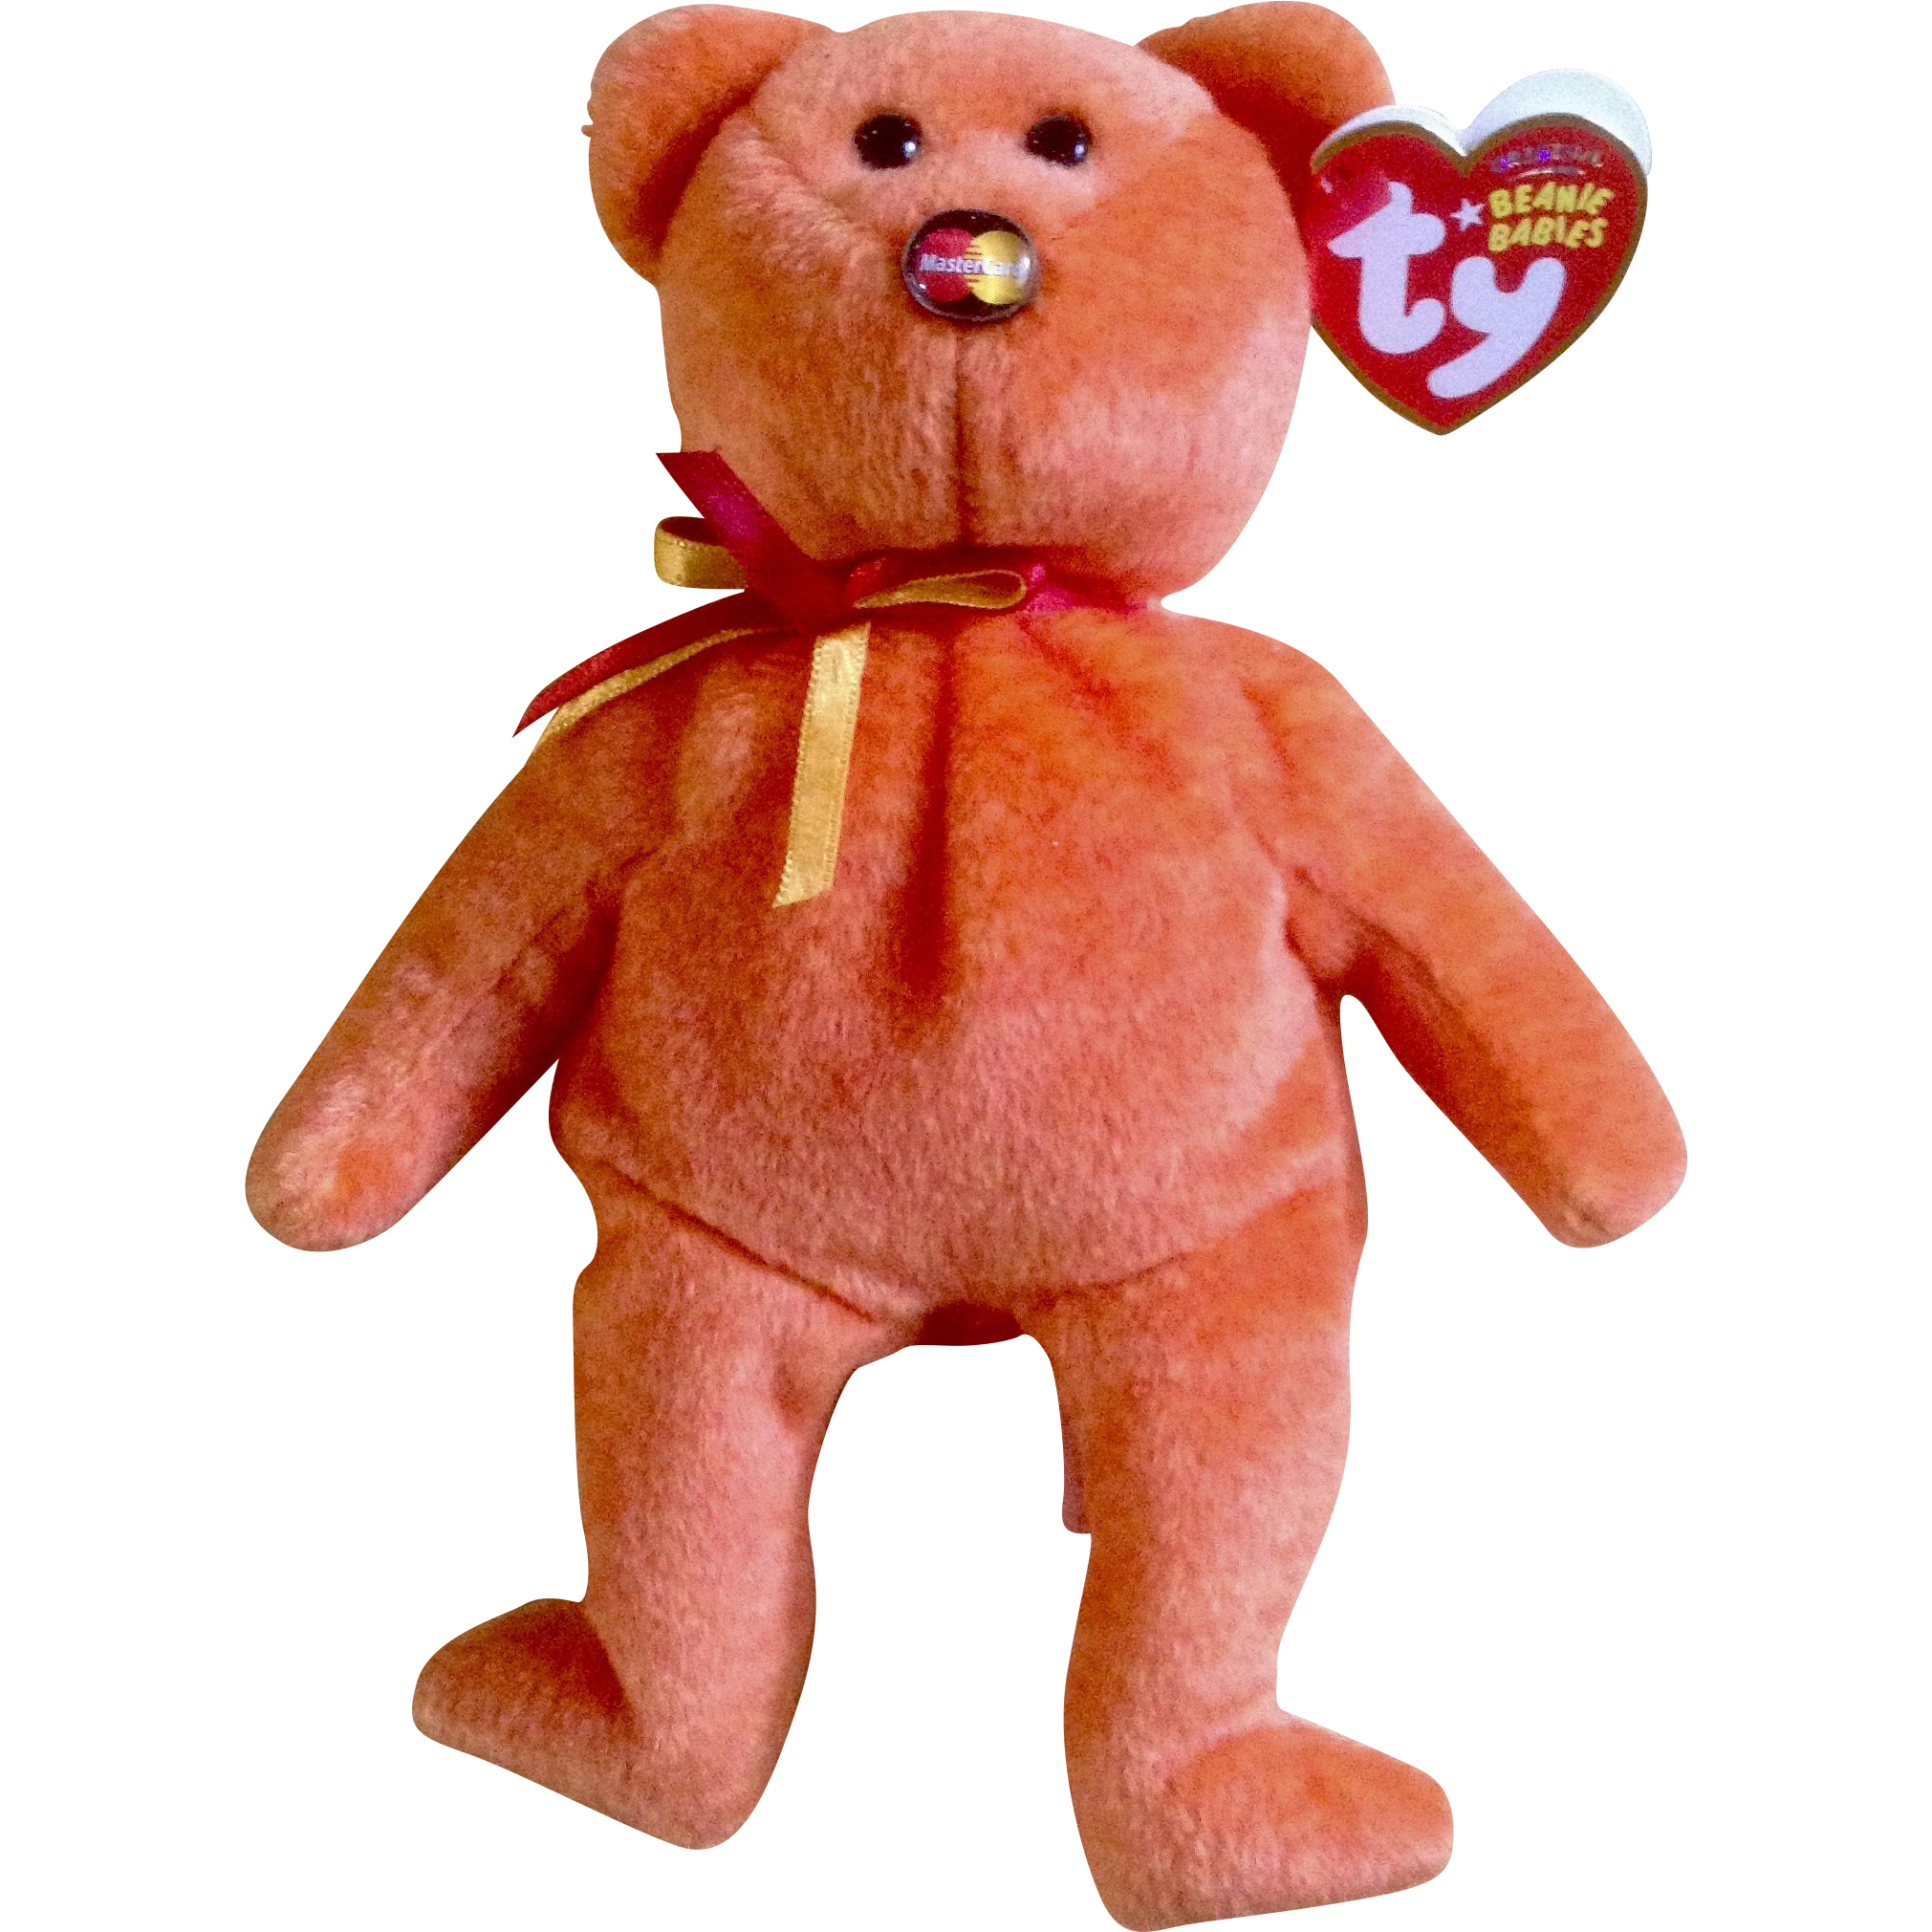 Beanie babies png. Retired orange baby from